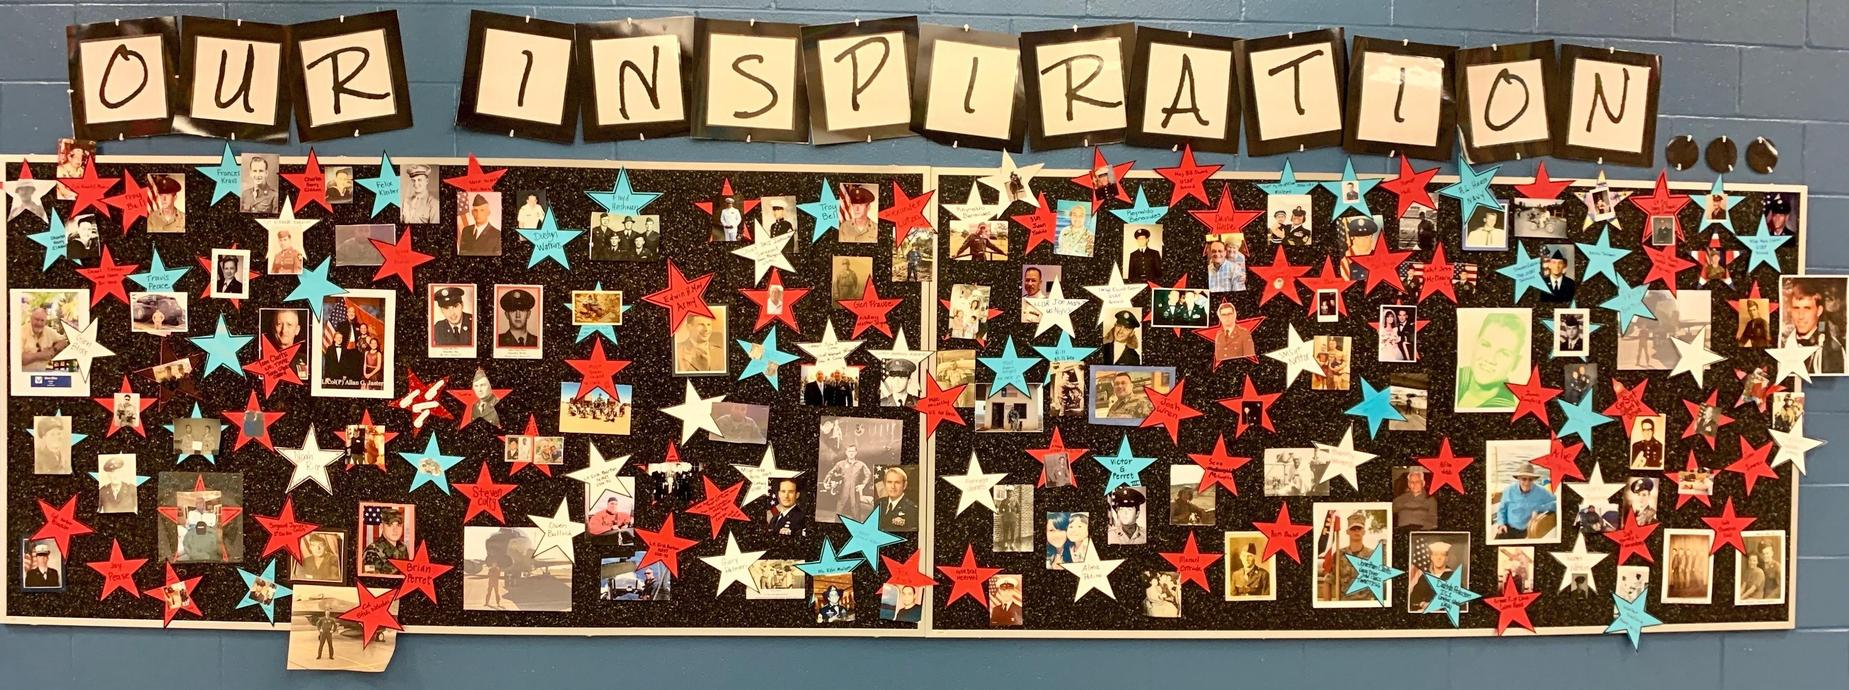 Veterans Day Wall 2019